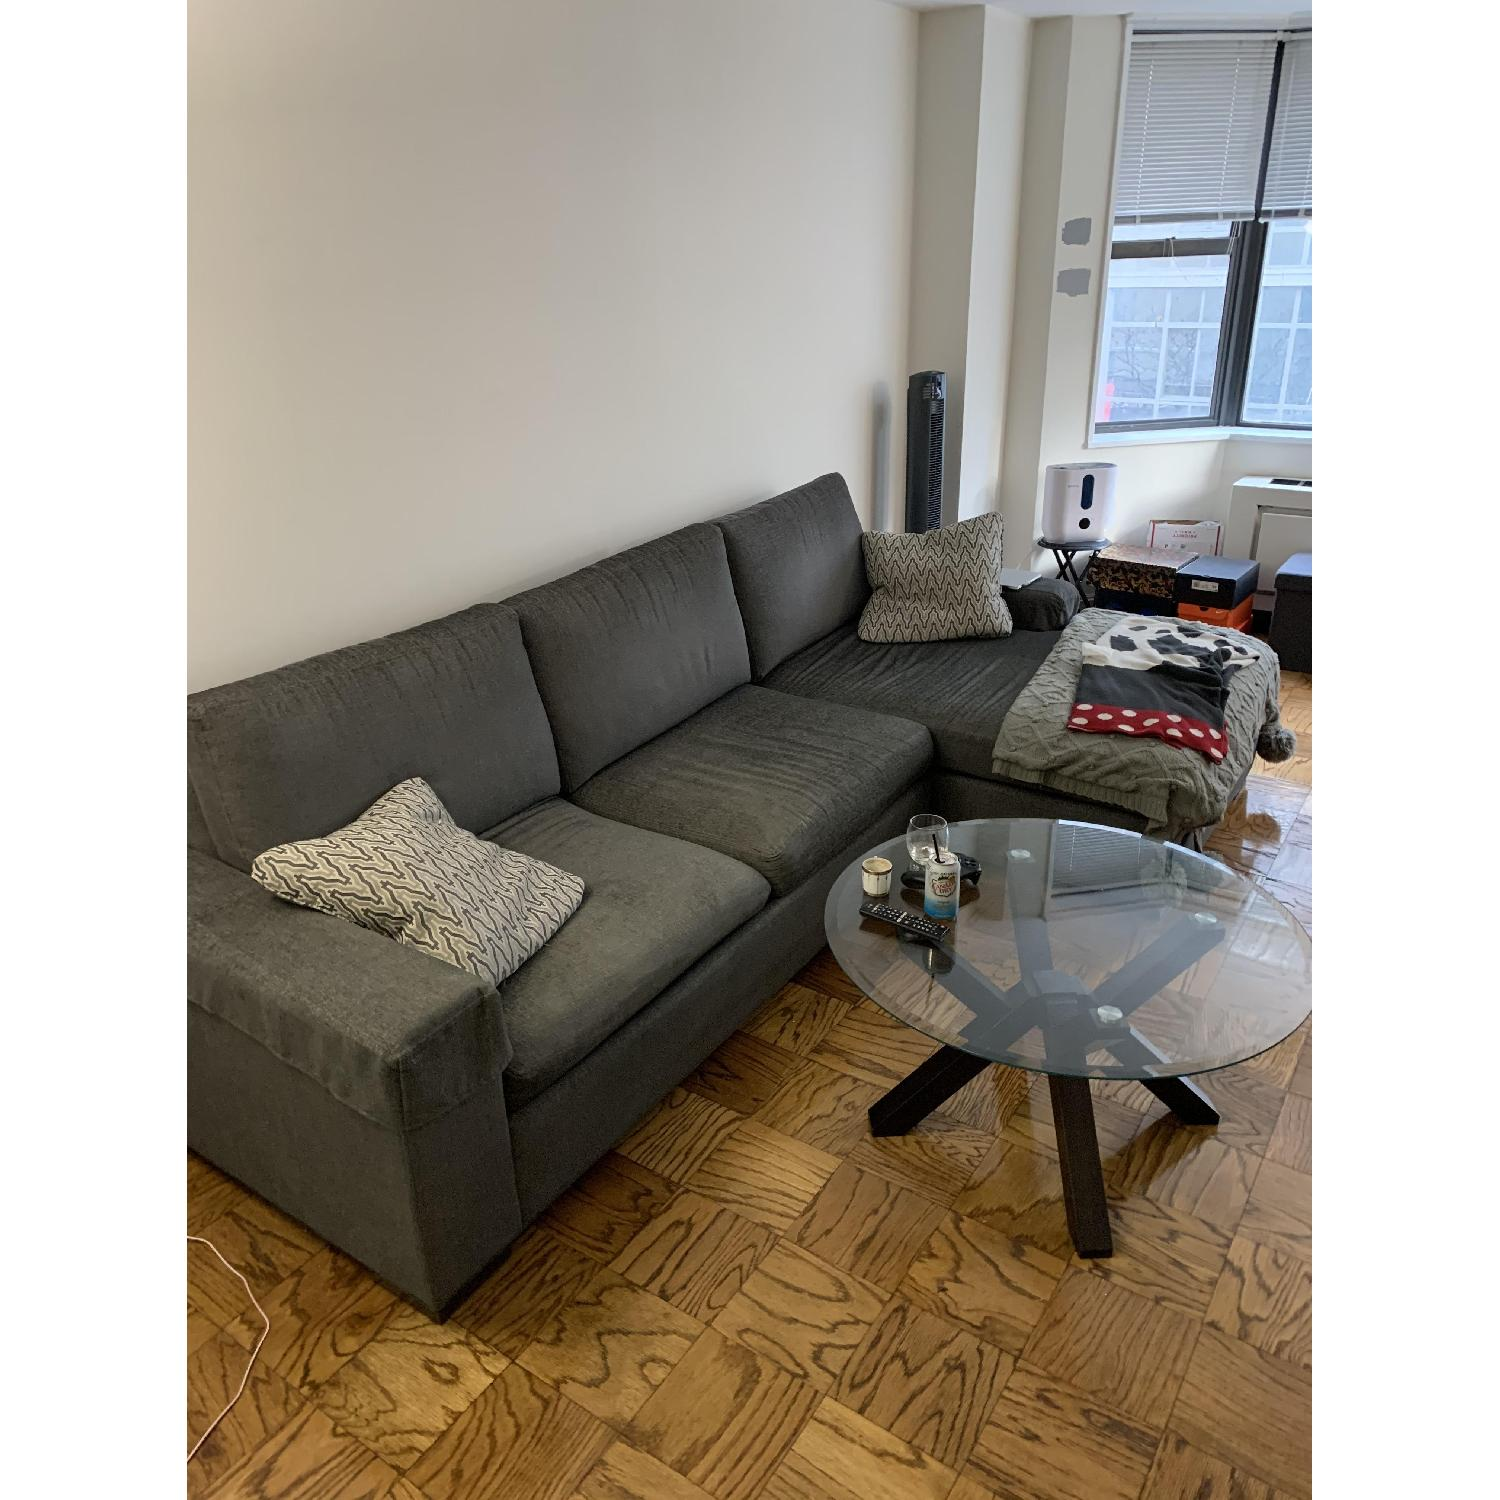 Ethan Allen Conway Grey 2-Piece Sectional Sofa - image-1